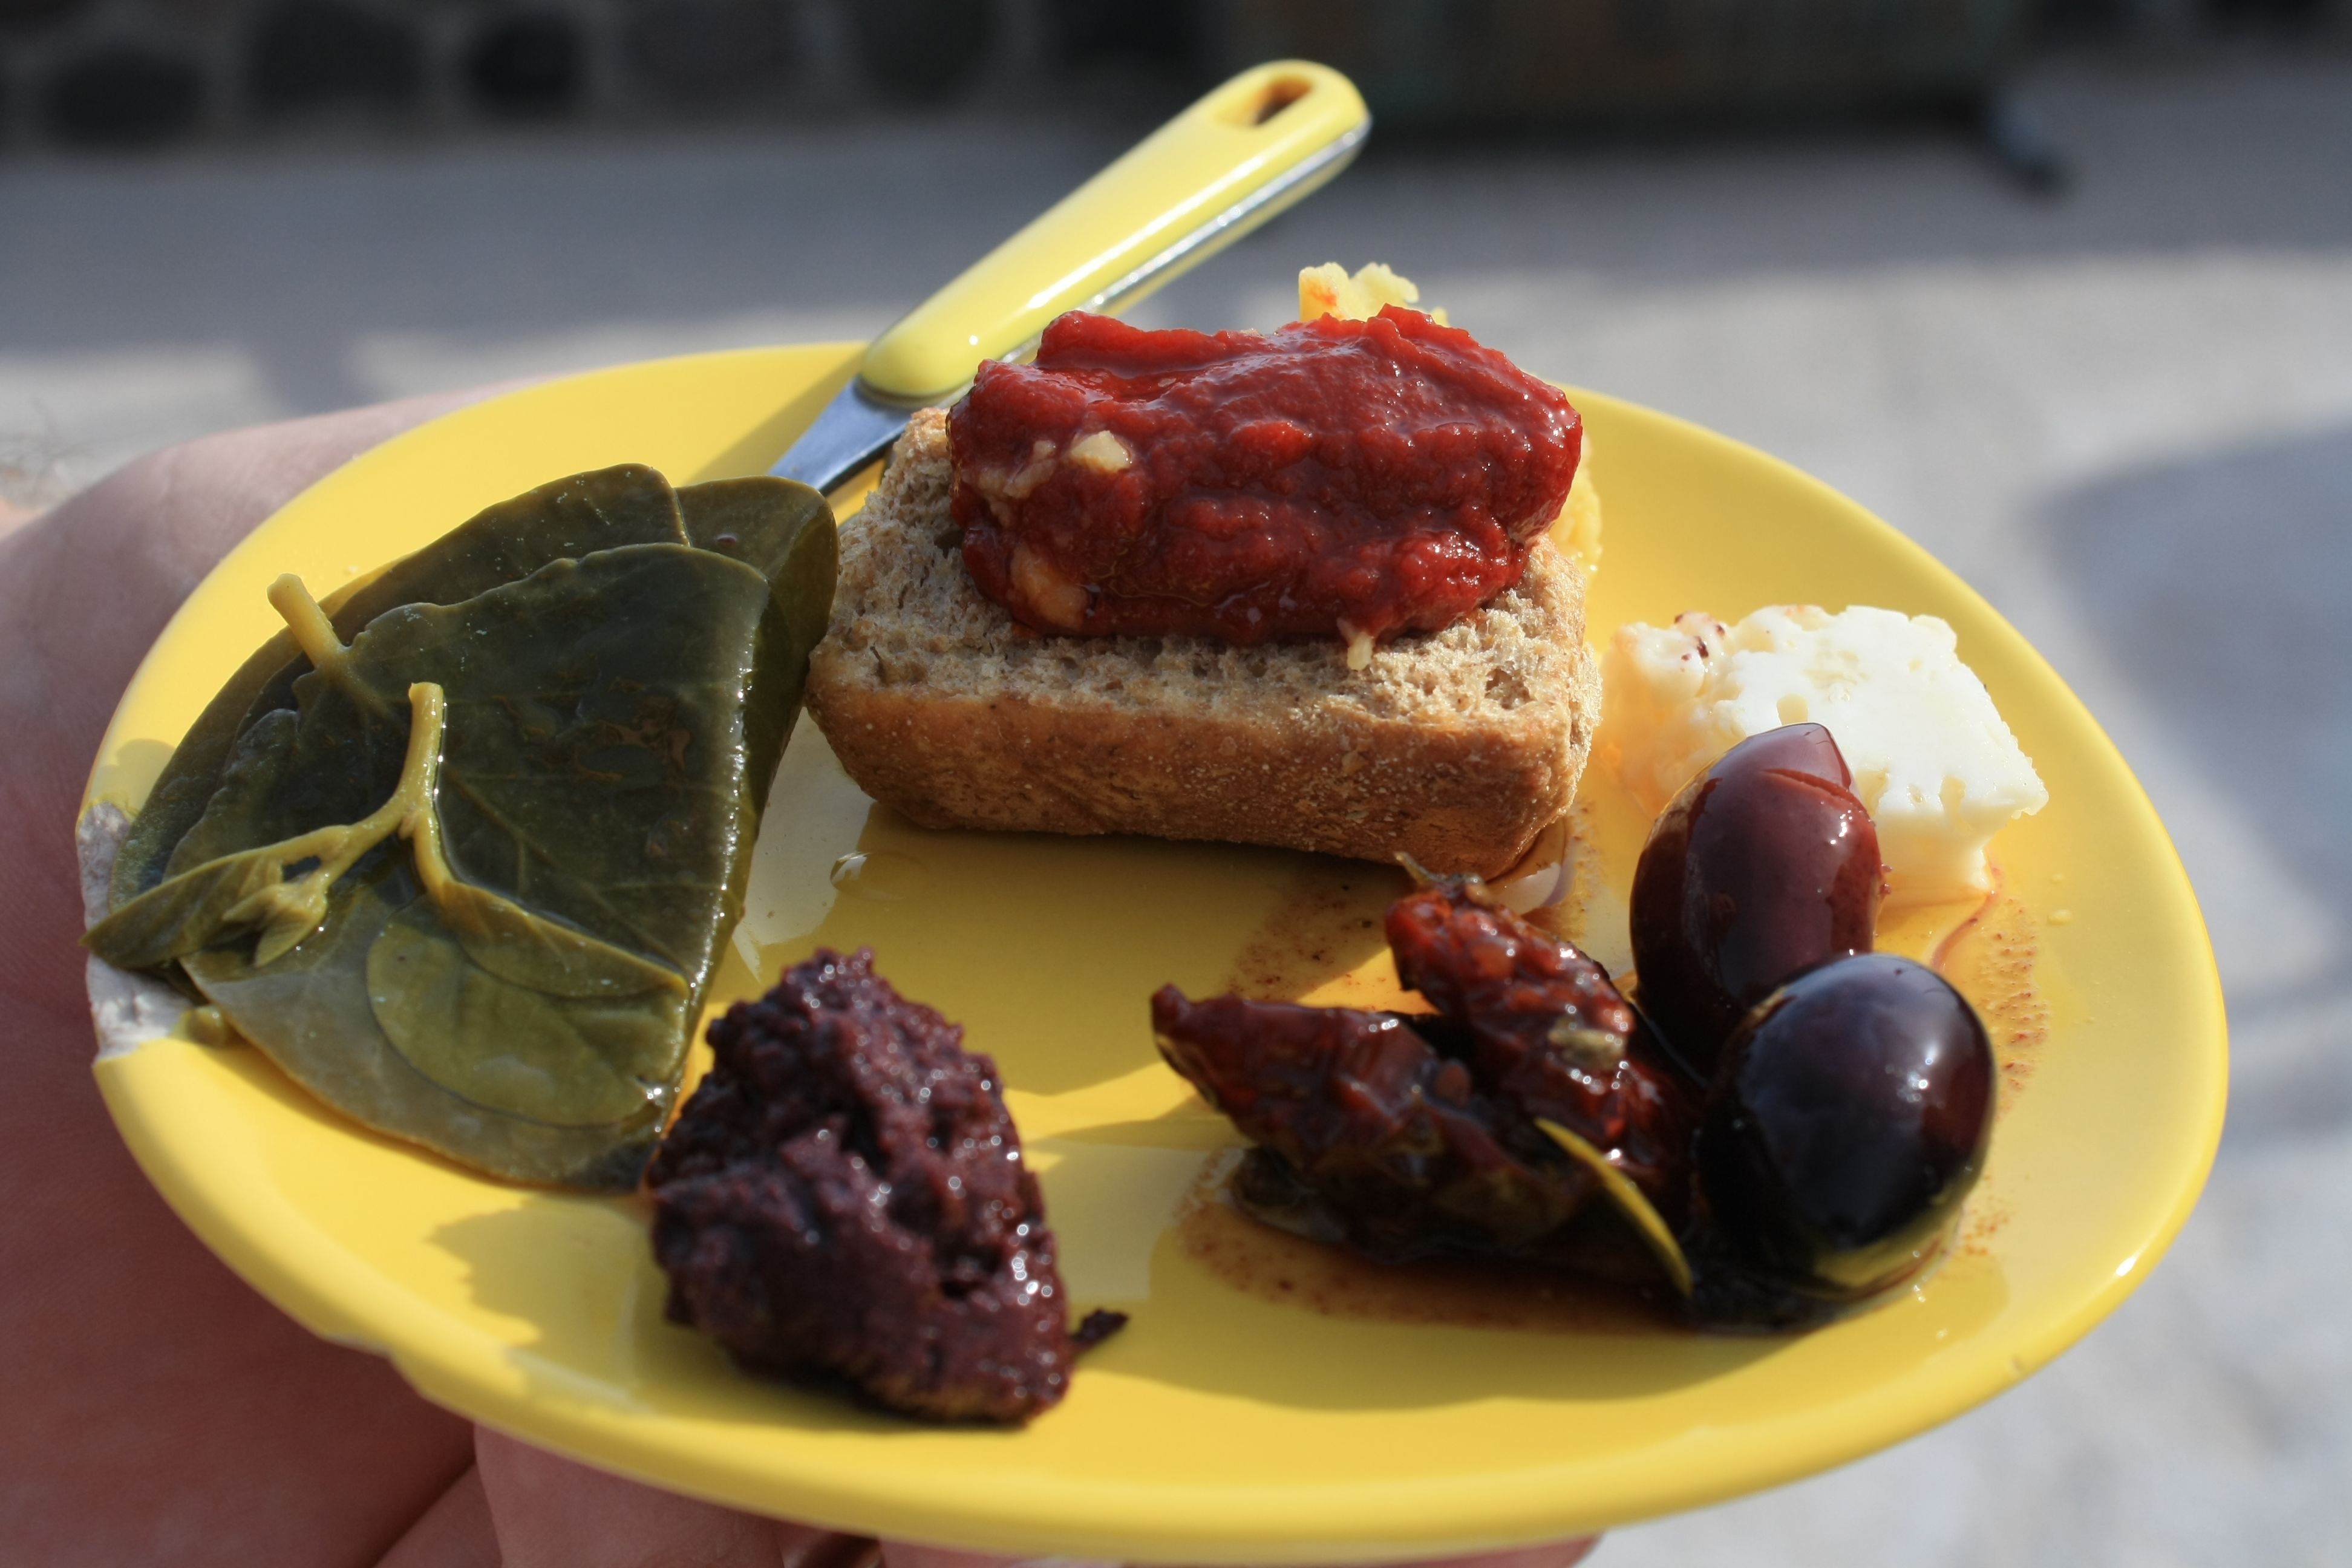 On the south side of Santorini along the roadside and Greek vineyards, you will find a little road-side shop with a Santorini native selling her homemade canned goods: sun dried tomatoes, pickled caper leaves, tomato spread and  olives. She was even on Giada!